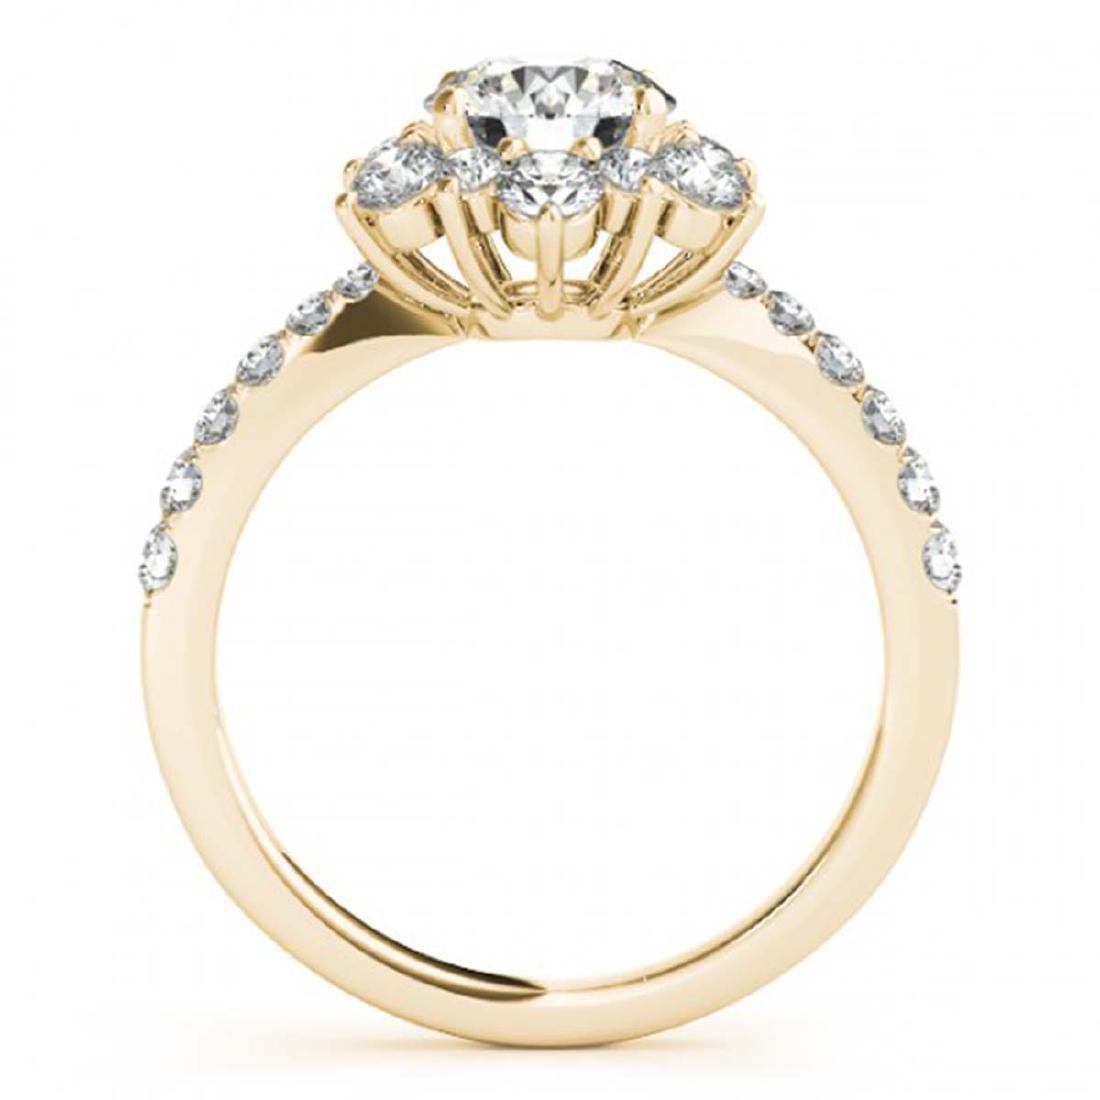 2.19 ctw VS/SI Diamond Halo Ring 18K Yellow Gold - - 2